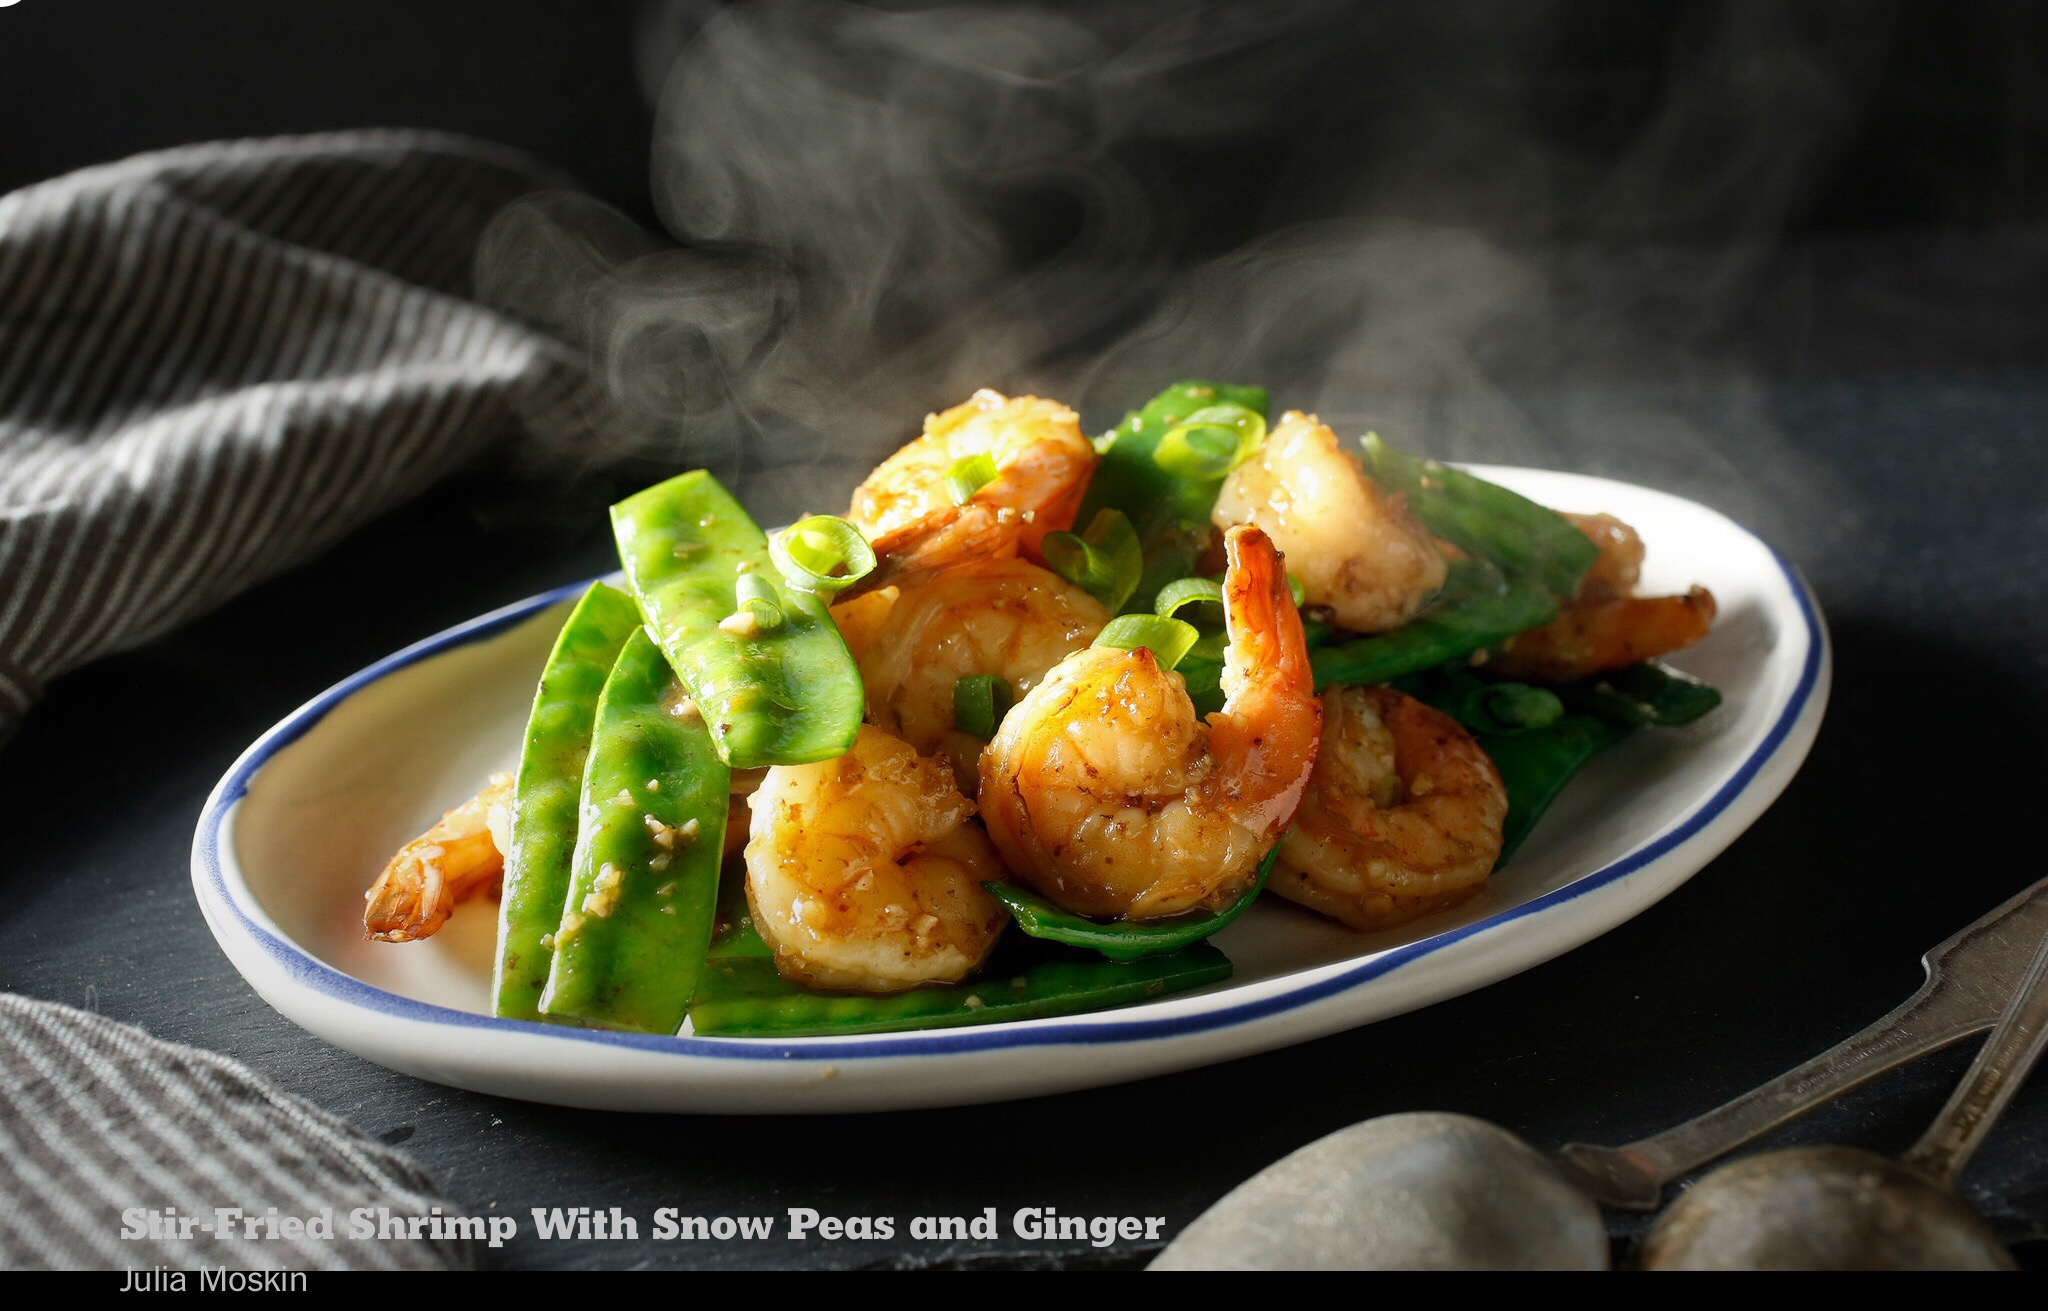 Stir-Fried Shrimp With Snow Peas and Ginger – beautifulyou583